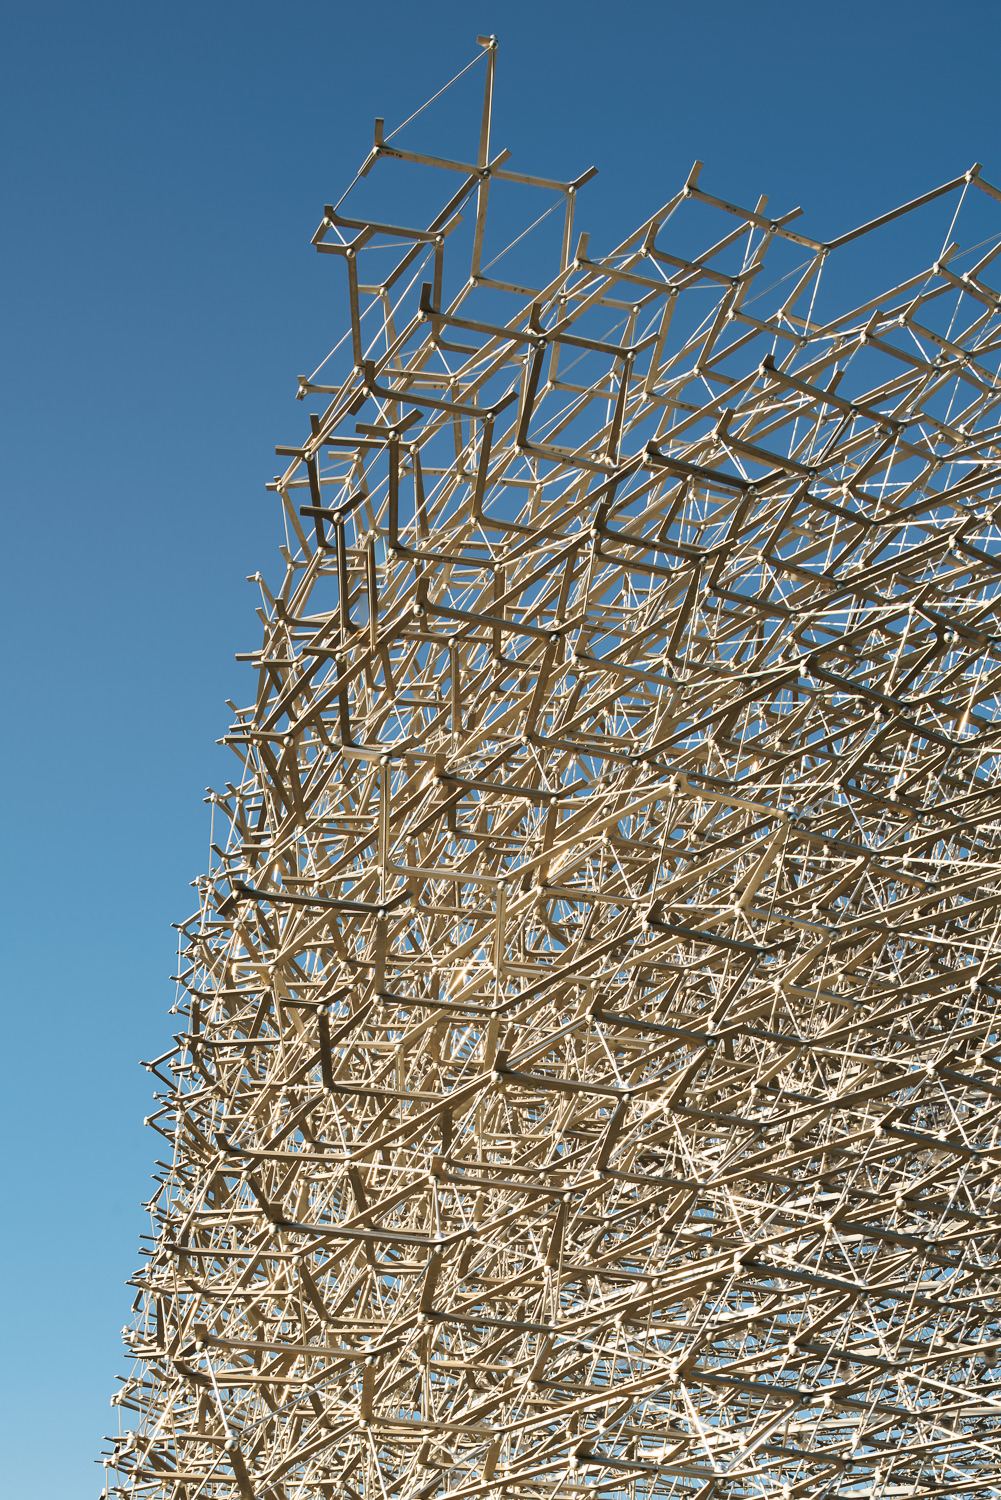 Detail of The Hive, Kew Gardens. Mark Hadden Architecture Photographer